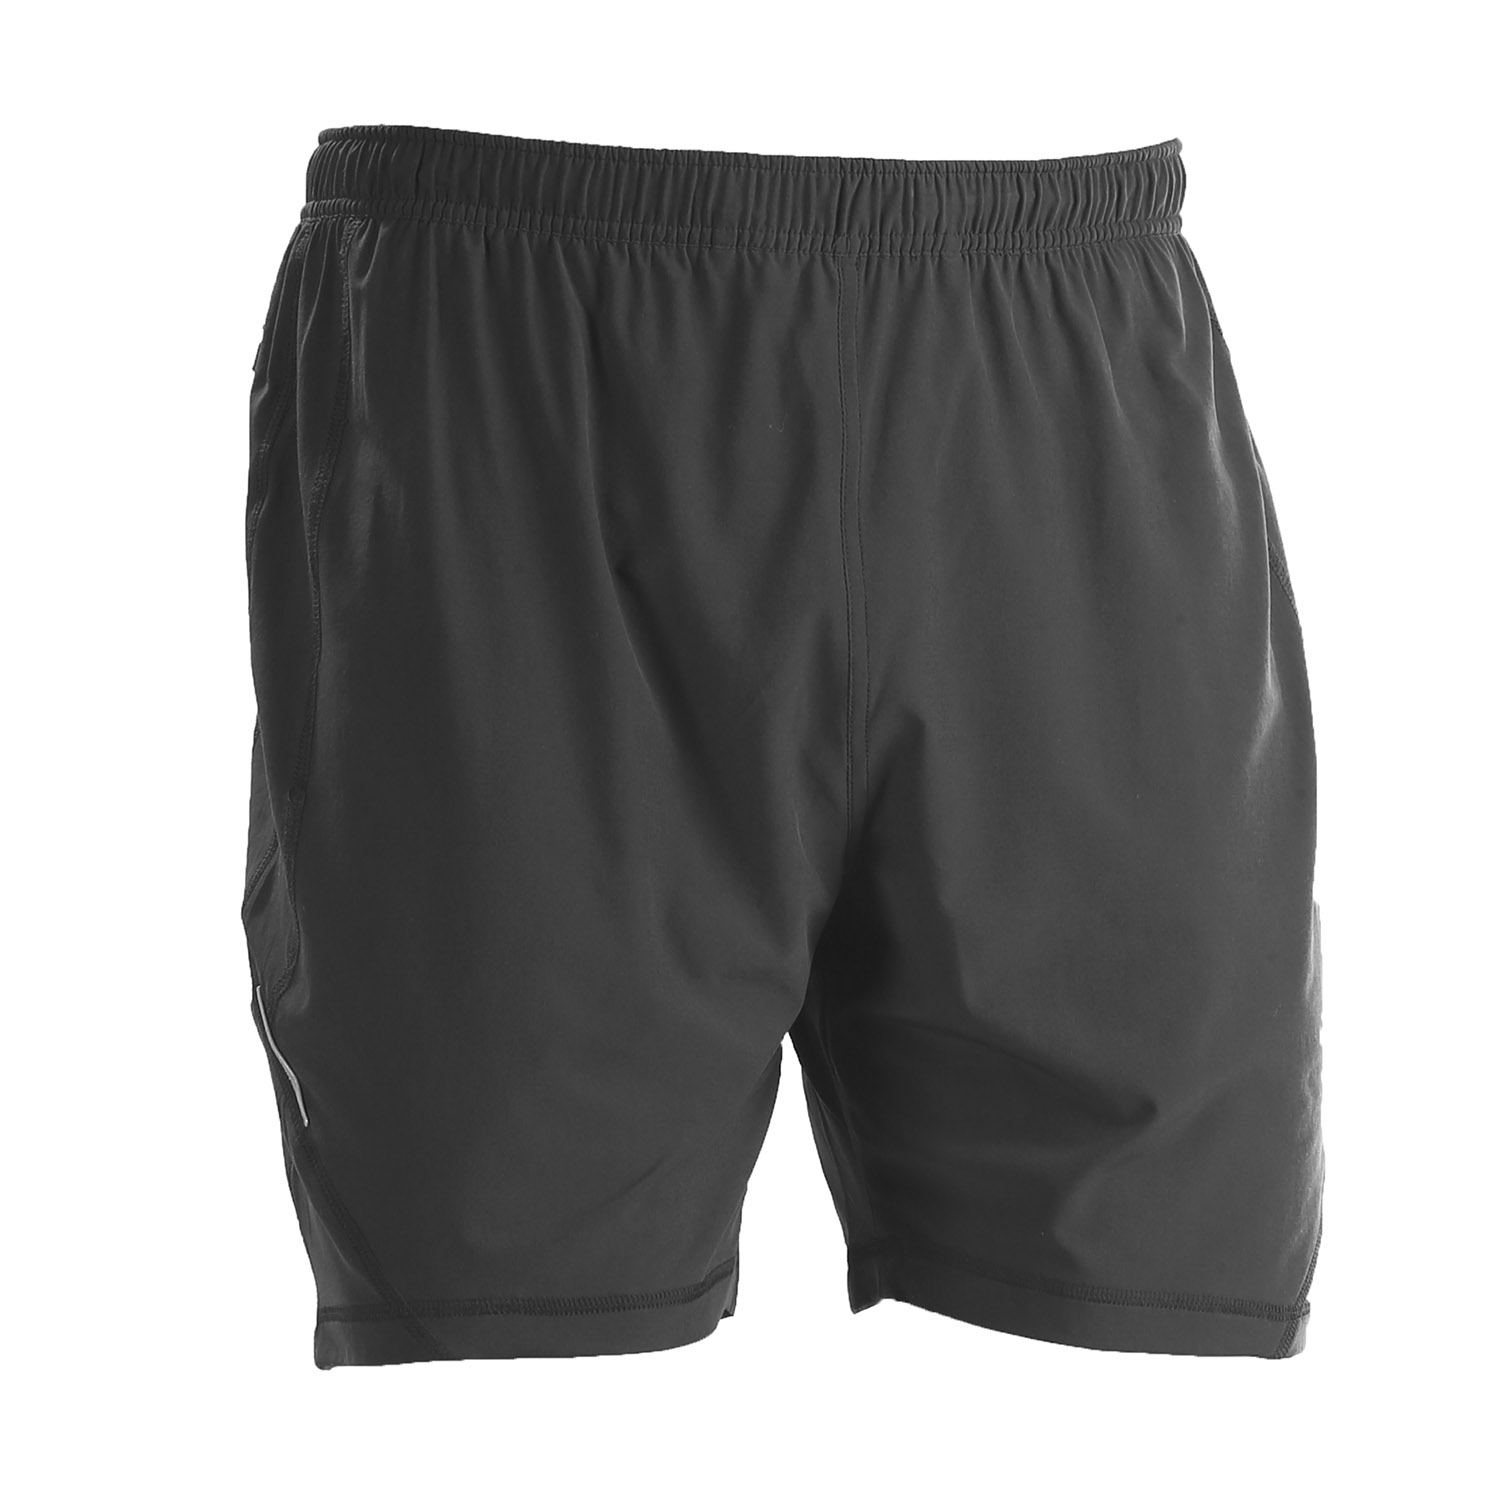 "tasc Performance Propulsion 7"" Shorts"